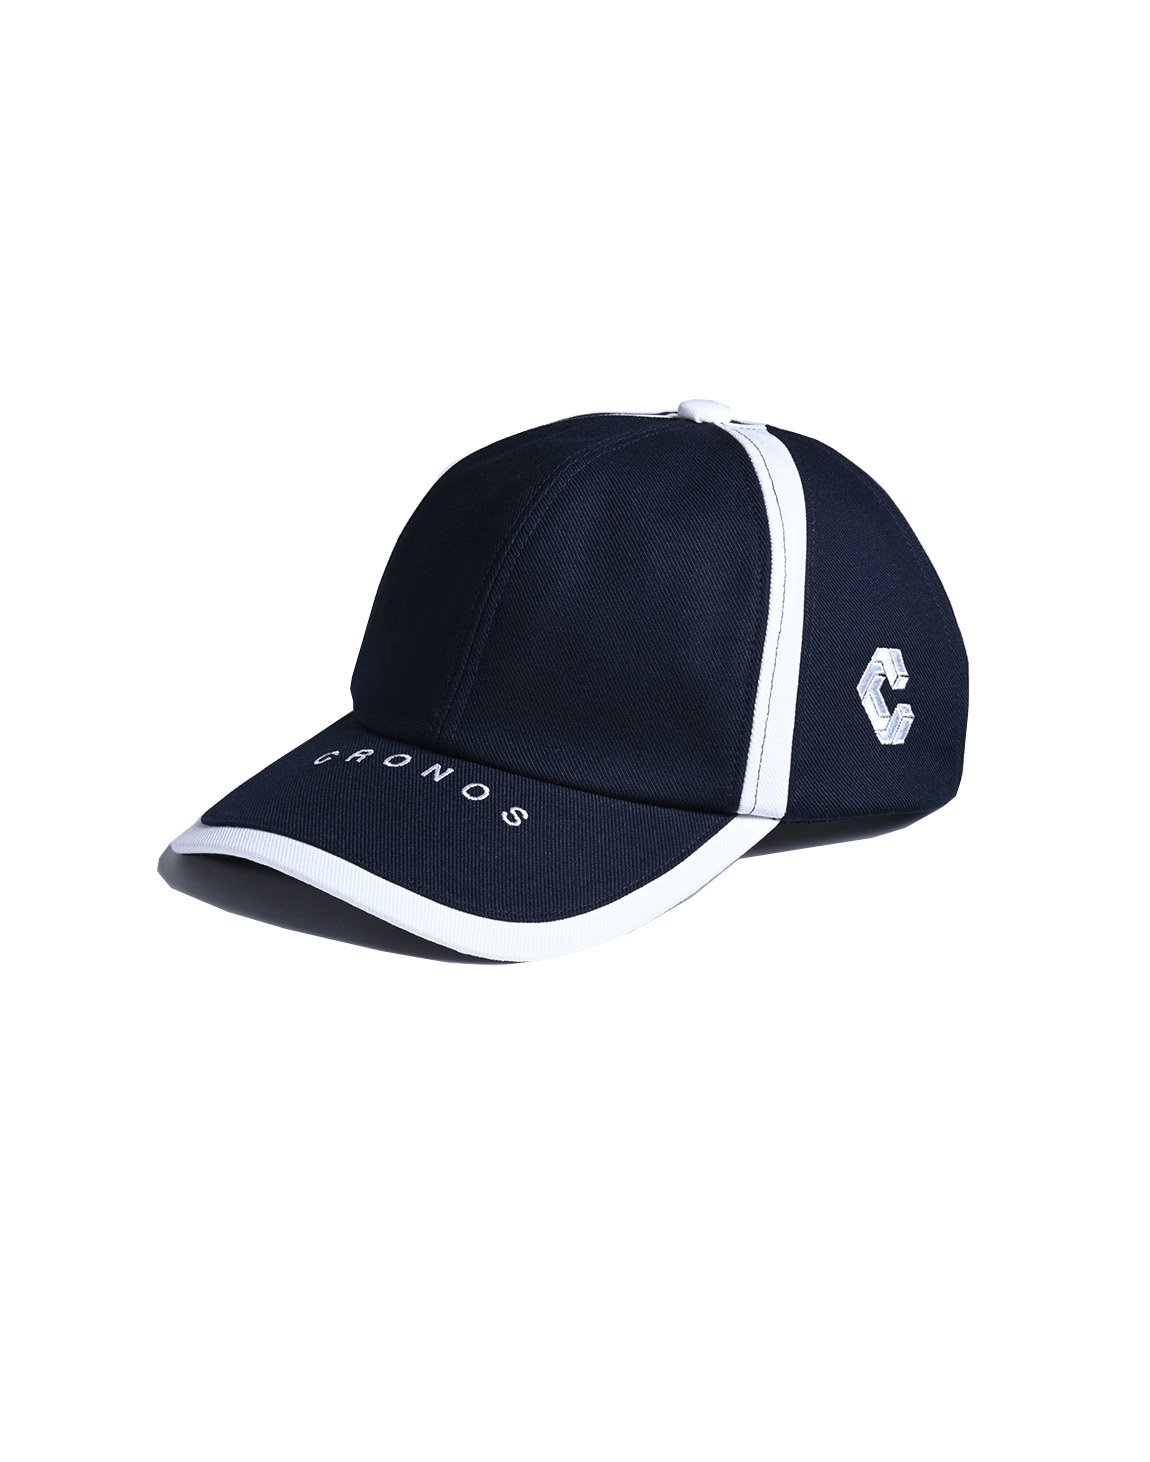 <img class='new_mark_img1' src='https://img.shop-pro.jp/img/new/icons1.gif' style='border:none;display:inline;margin:0px;padding:0px;width:auto;' />CRONOS LINE TAPE CAP 【NAVY】